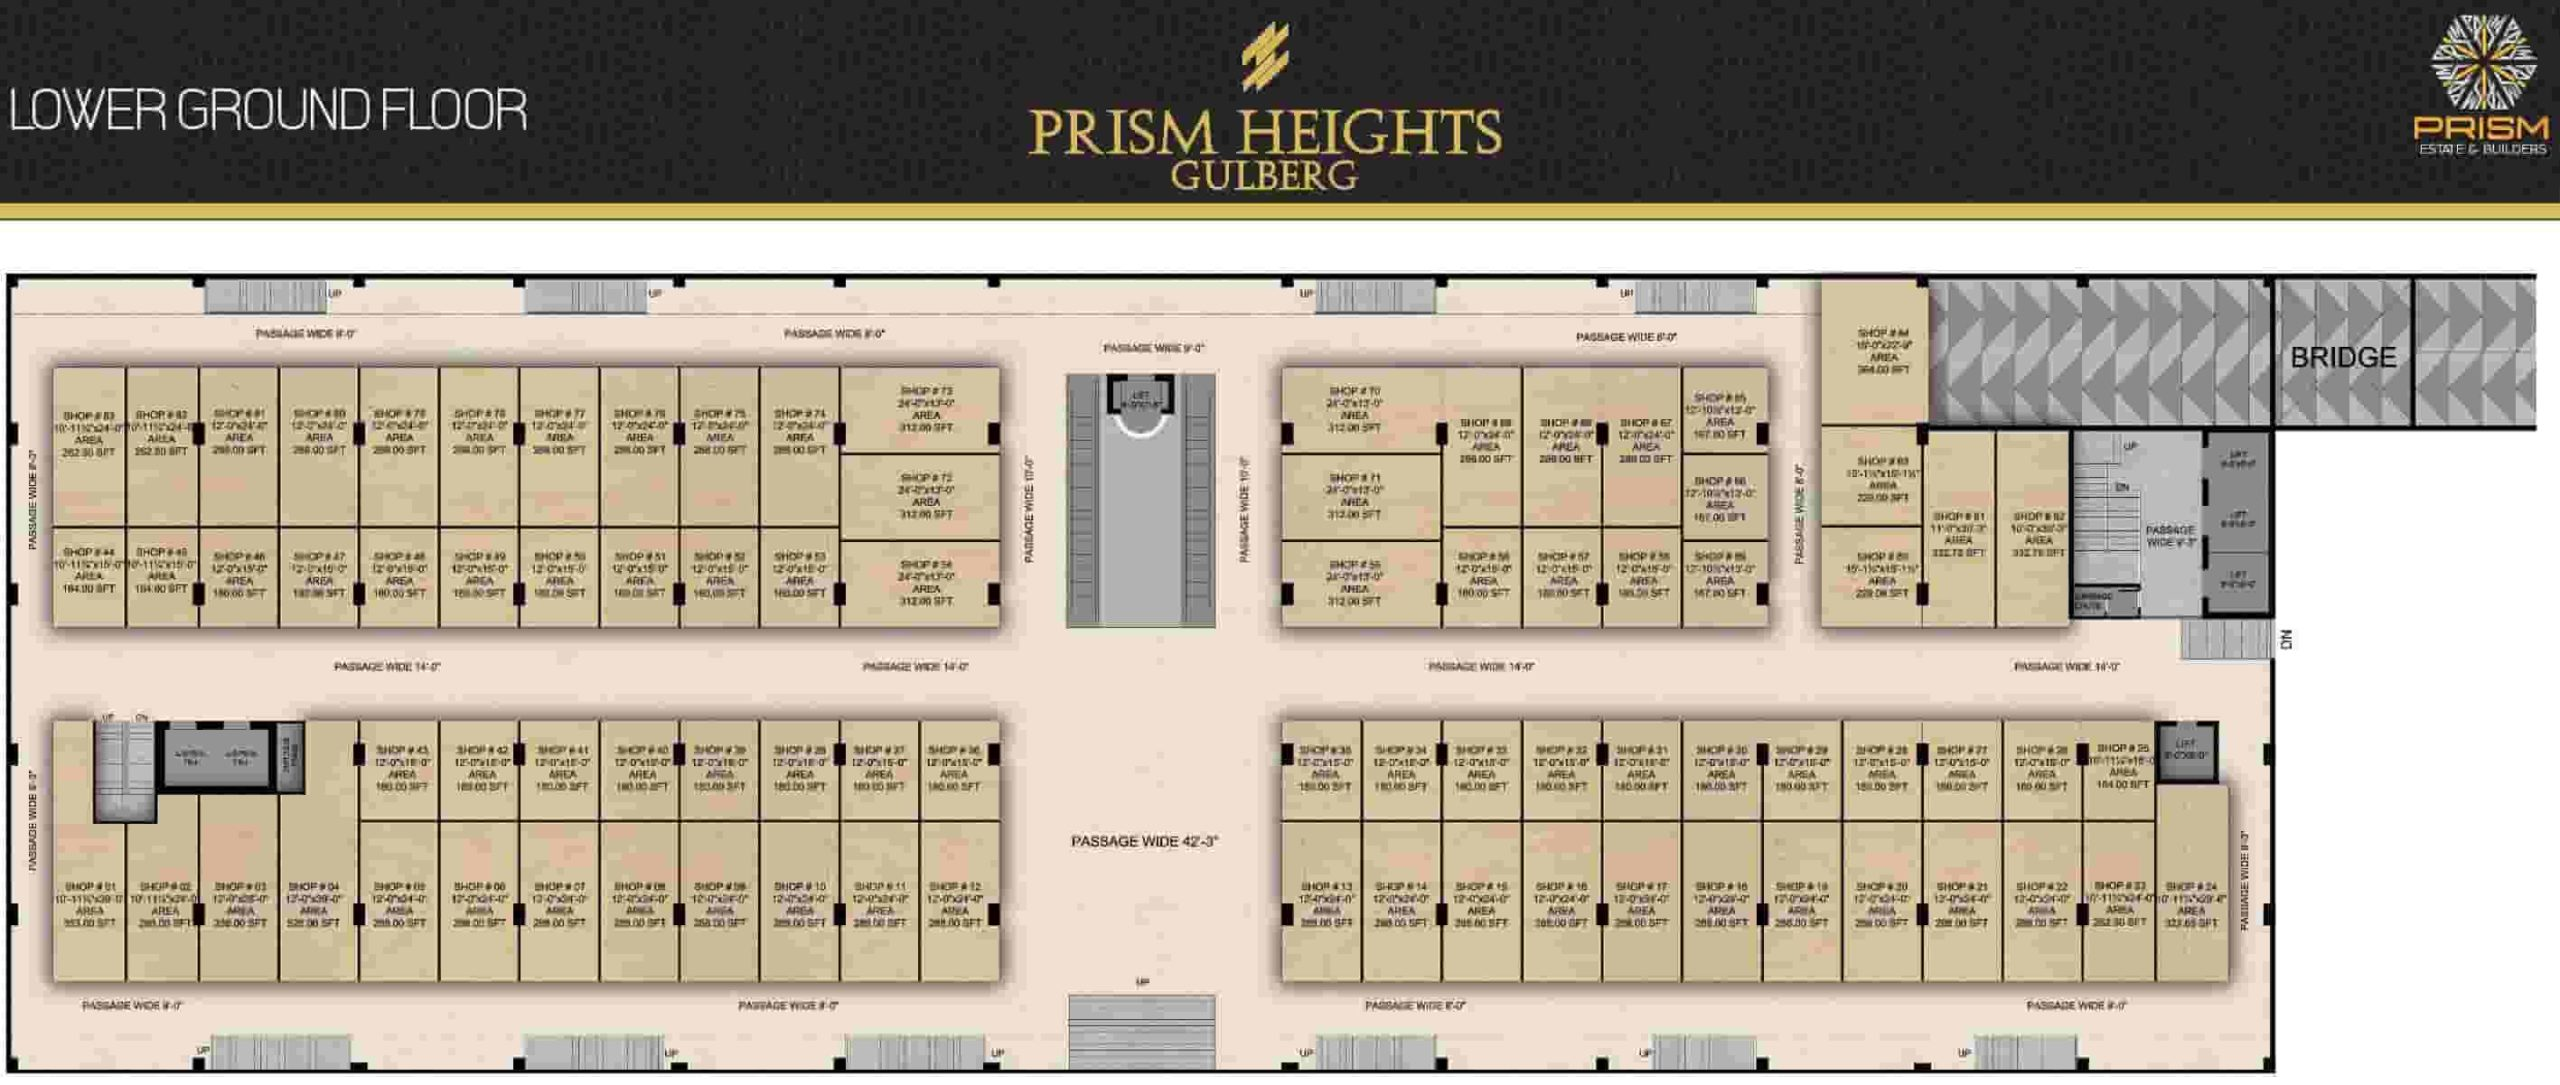 Prism Heights Lower Ground Floor Plan